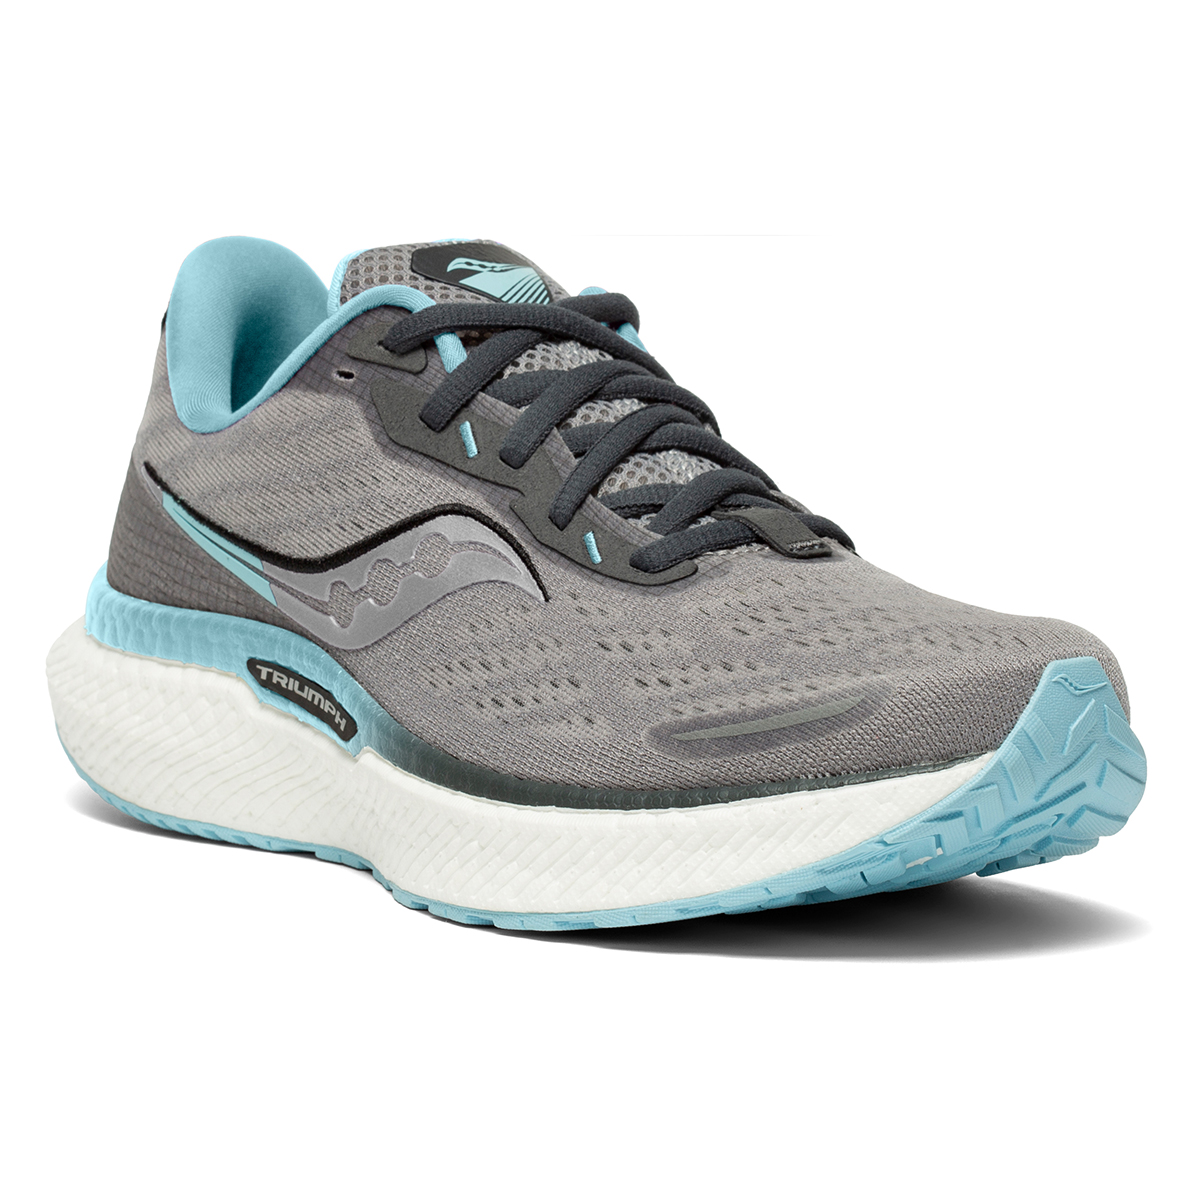 Women's Saucony Triumph 19 Running Shoe - Color: Alloy/Concord - Size: 6 - Width: Regular, Alloy/Concord, large, image 2